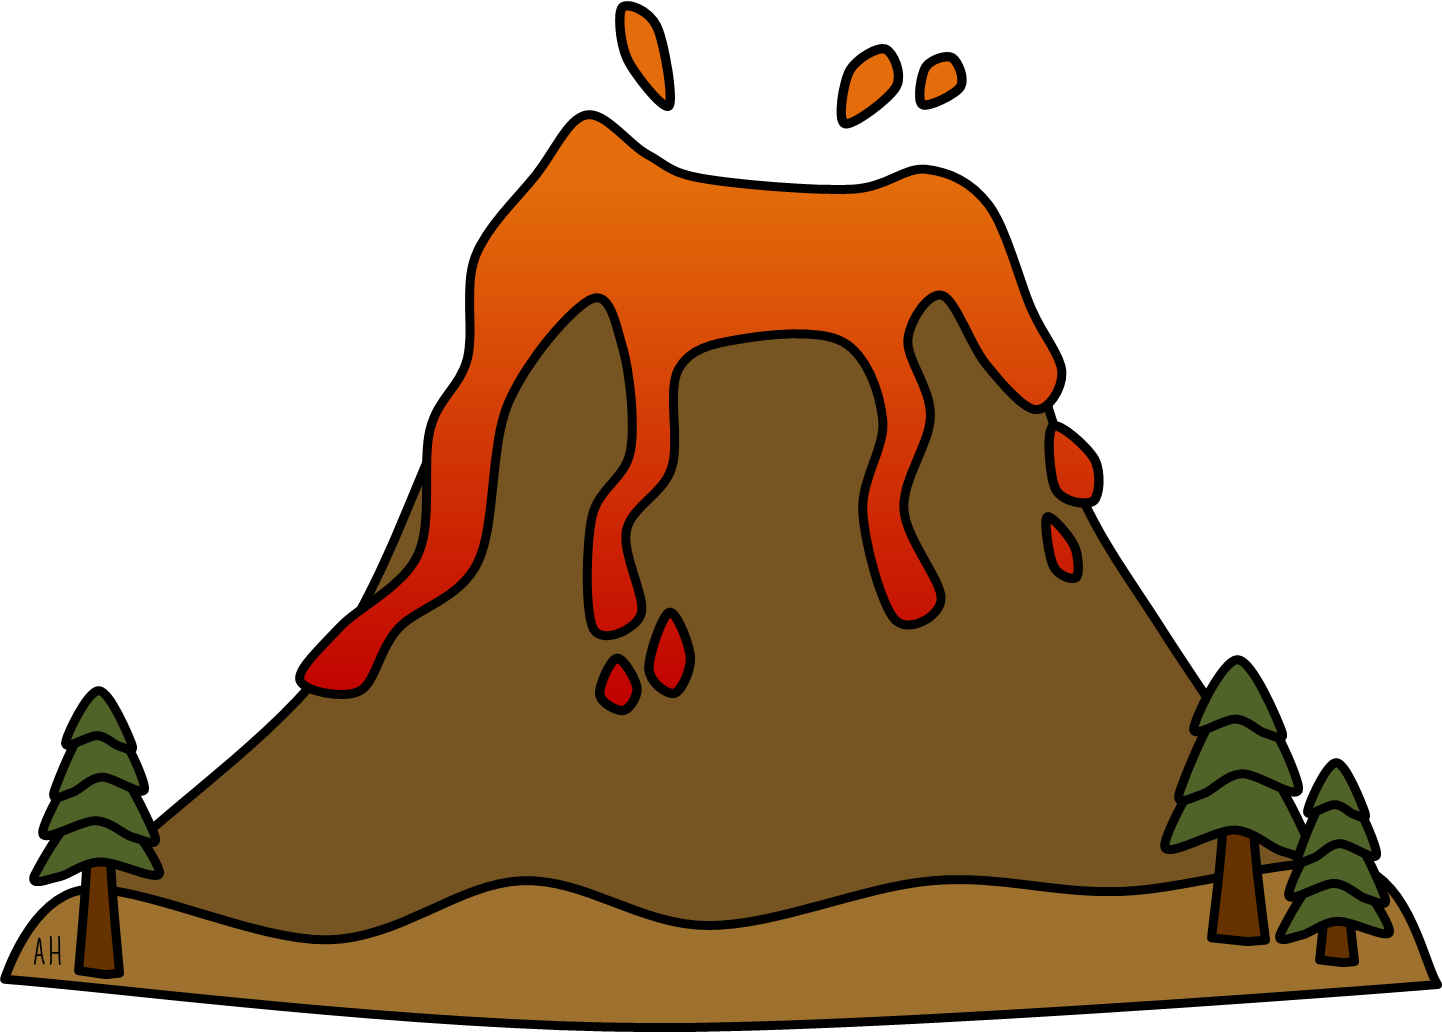 Clipart mountain volcano. Images for gif animation